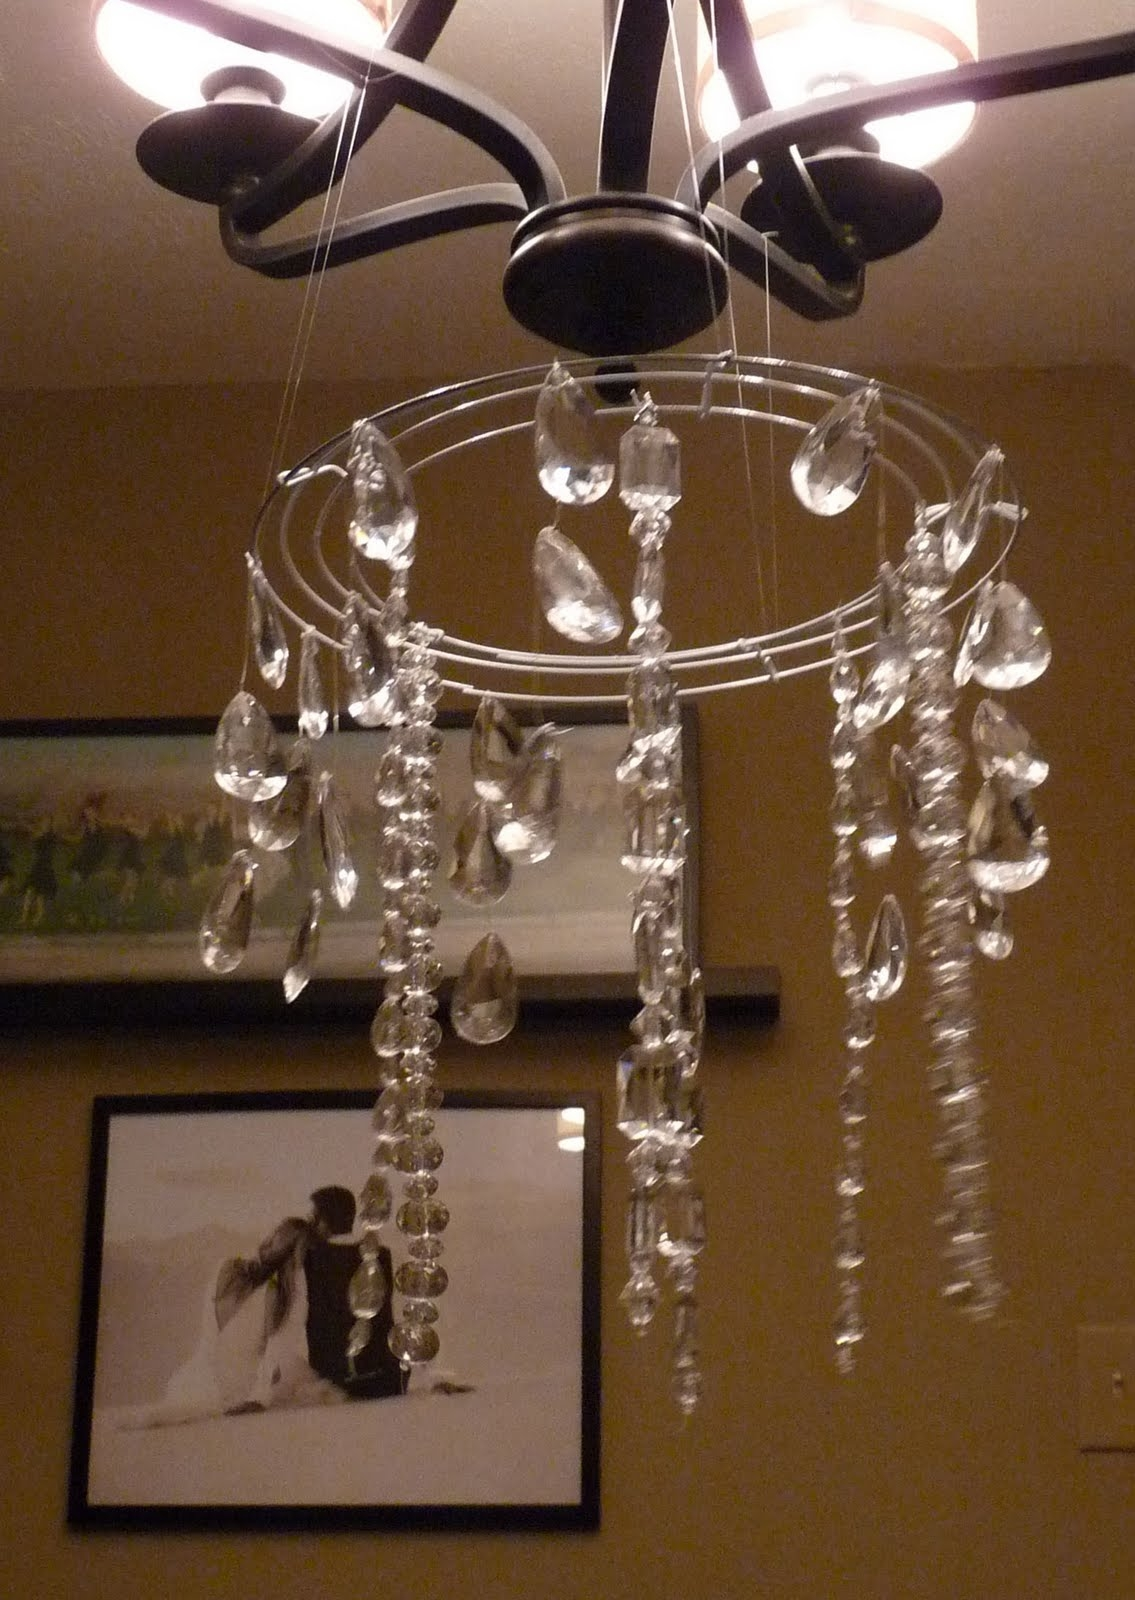 Chandelier Astonishing Faux Crystal Chandeliers Faux Chandeliers With Regard To Cheap Faux Crystal Chandeliers (Image 7 of 25)